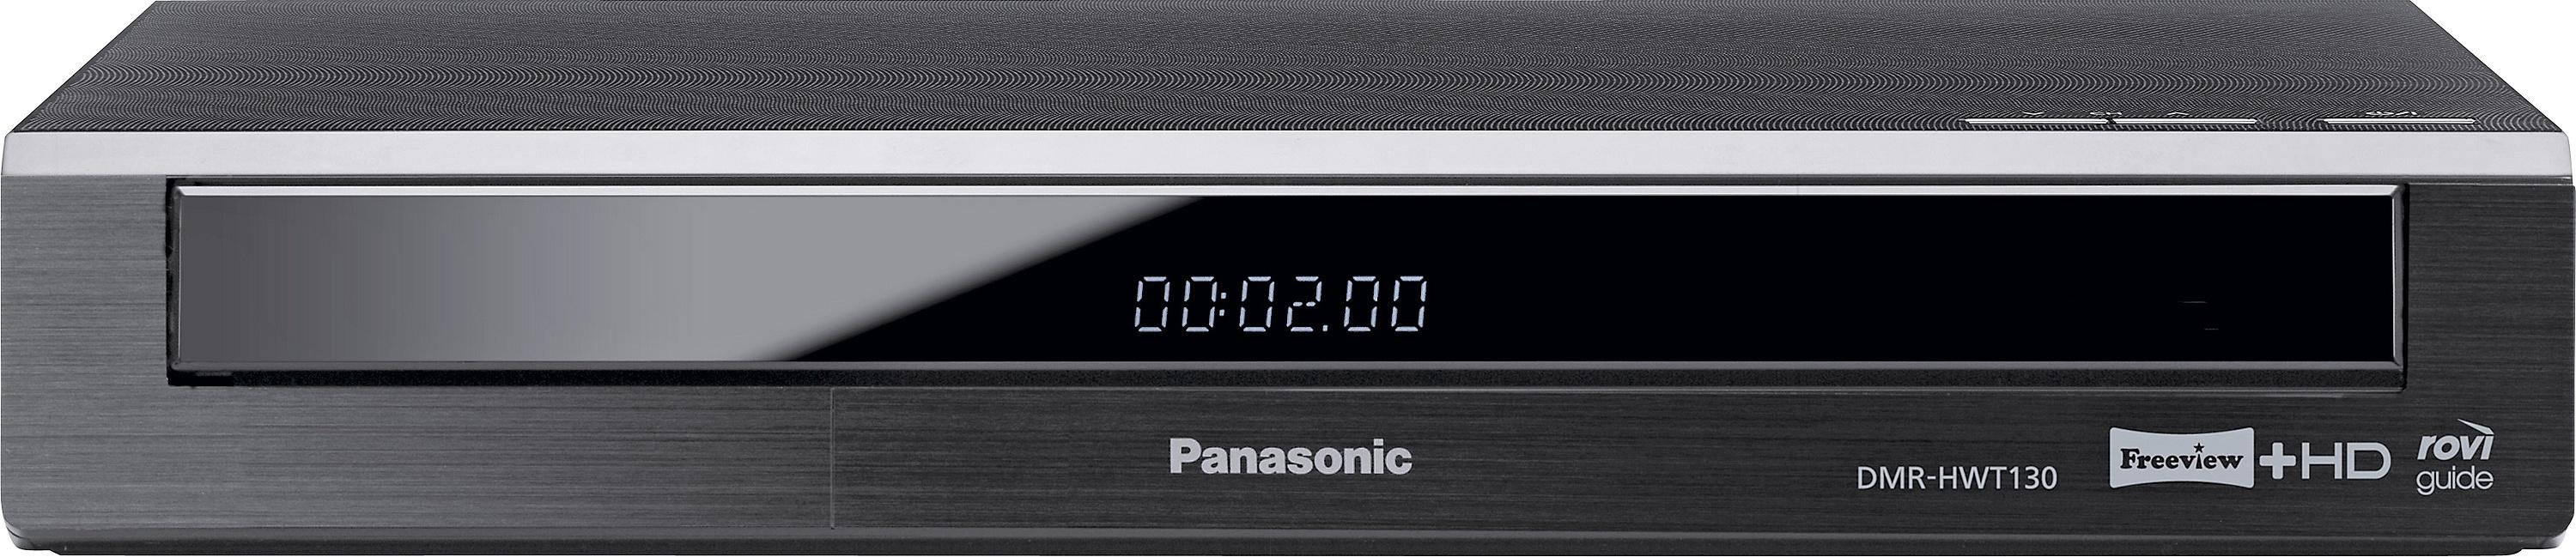 Panasonic Panasonic - DMR-HWT130 500GB Freeview+ HD Smart TV Recorder